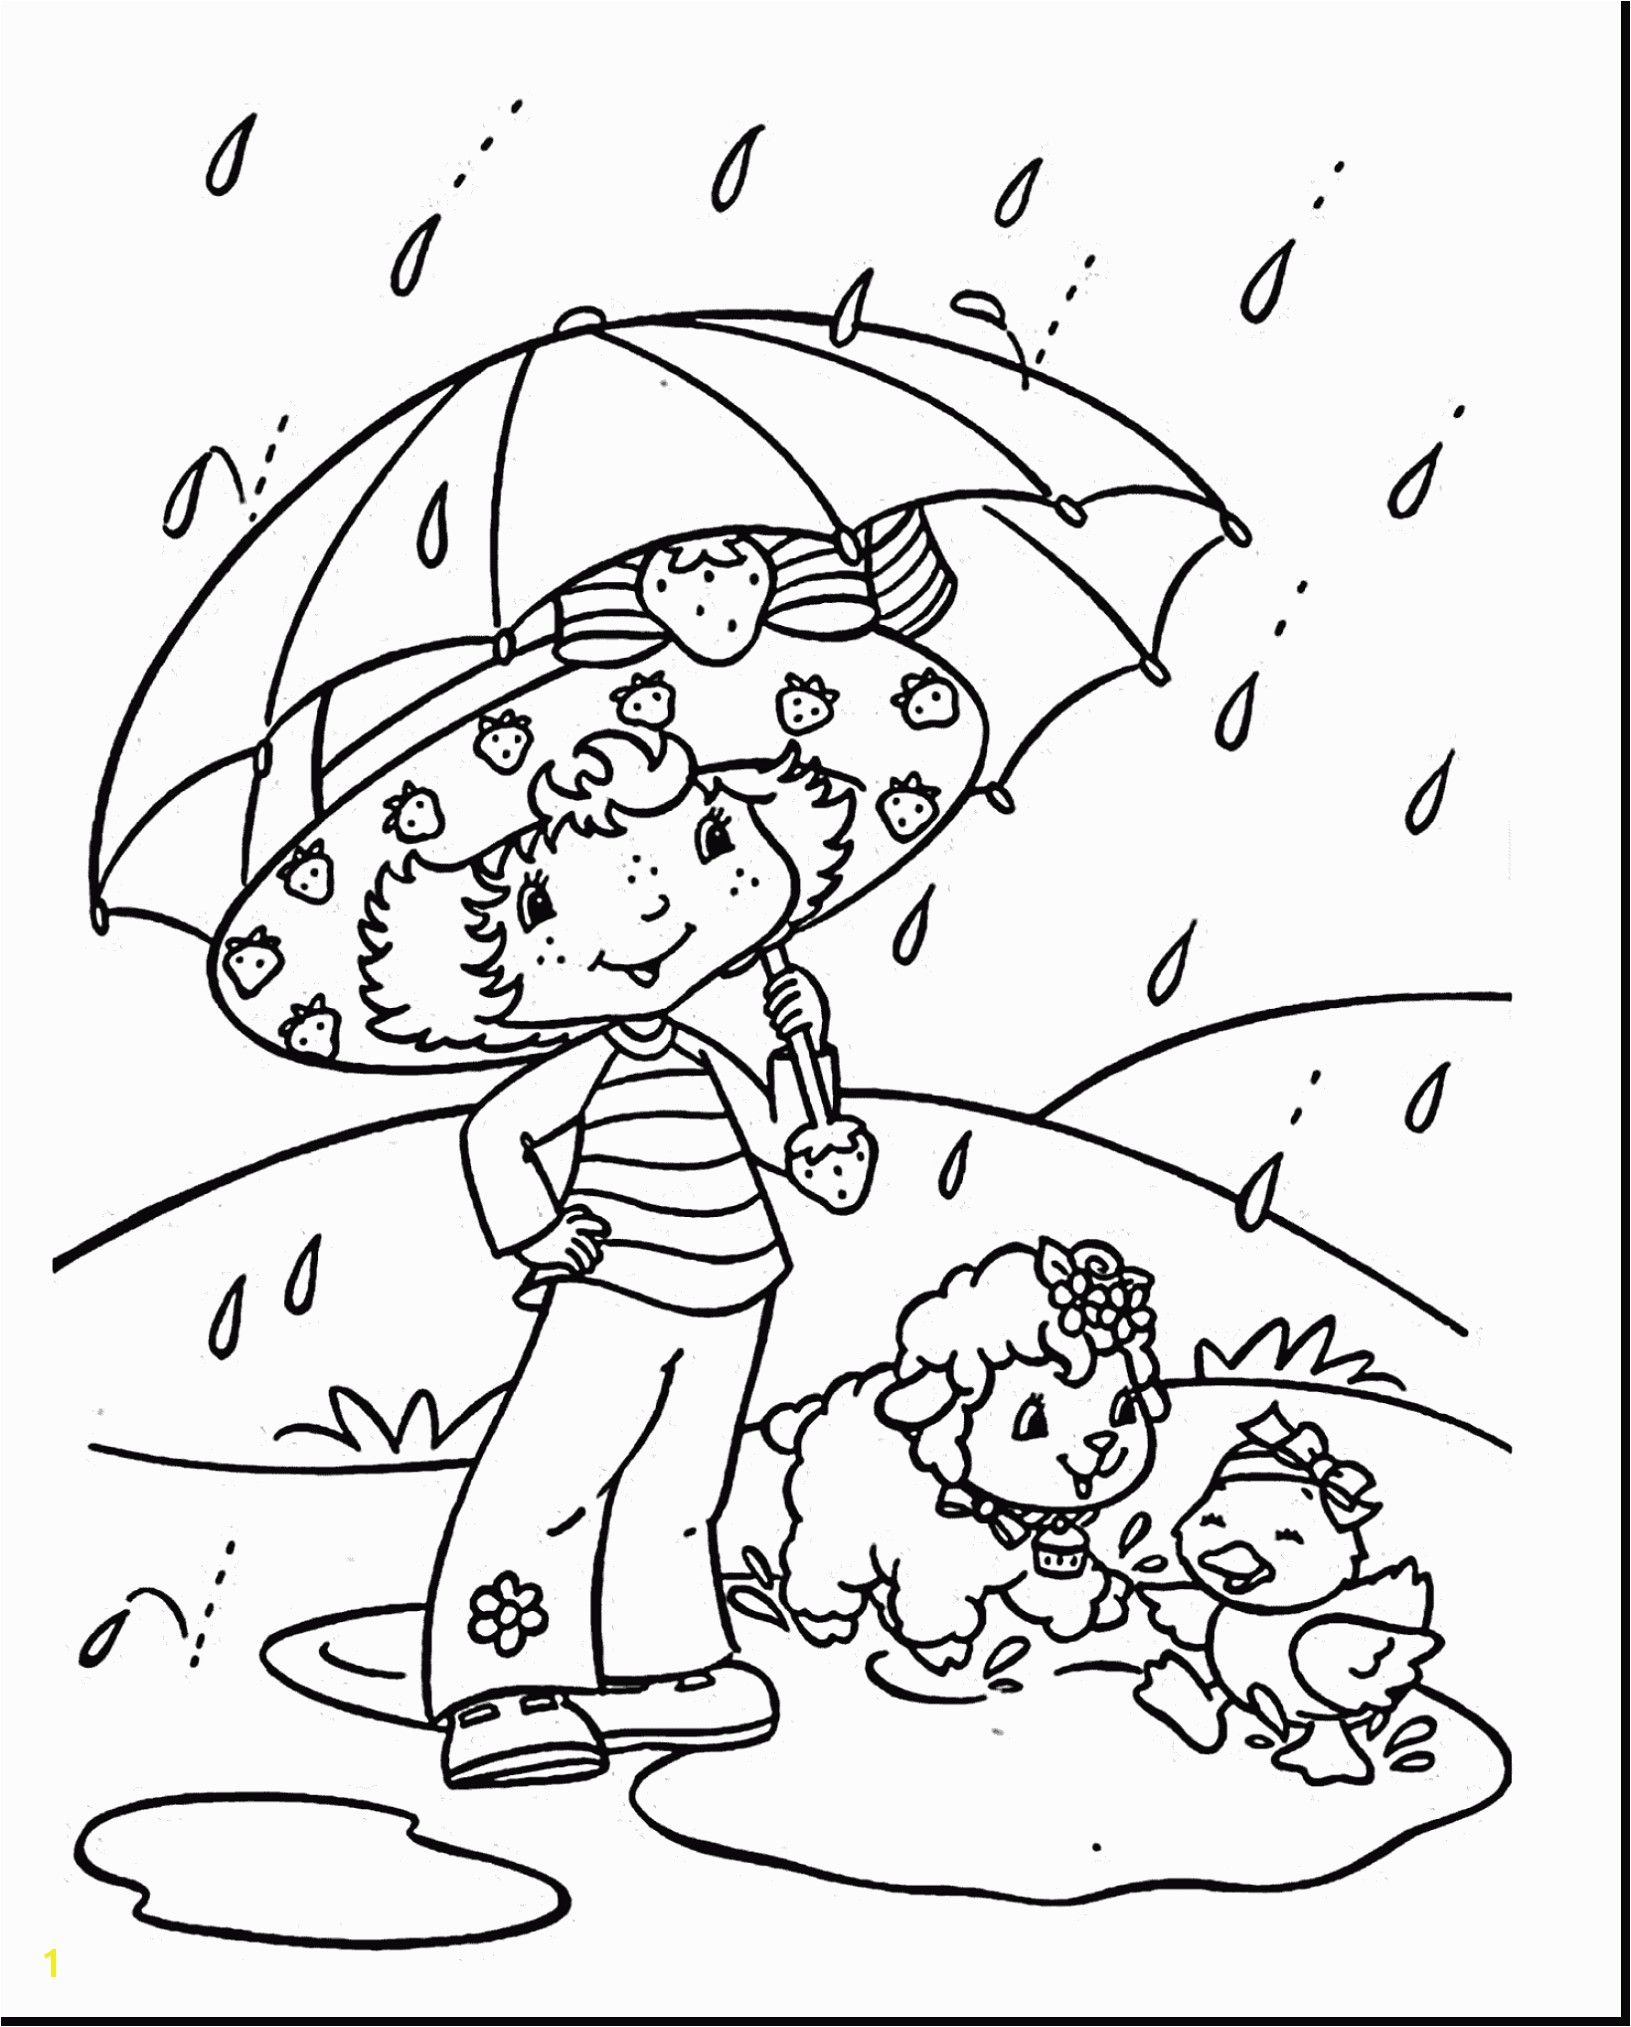 Exciting Rainy Day Colouring Pages Coloring Rain Page With 35